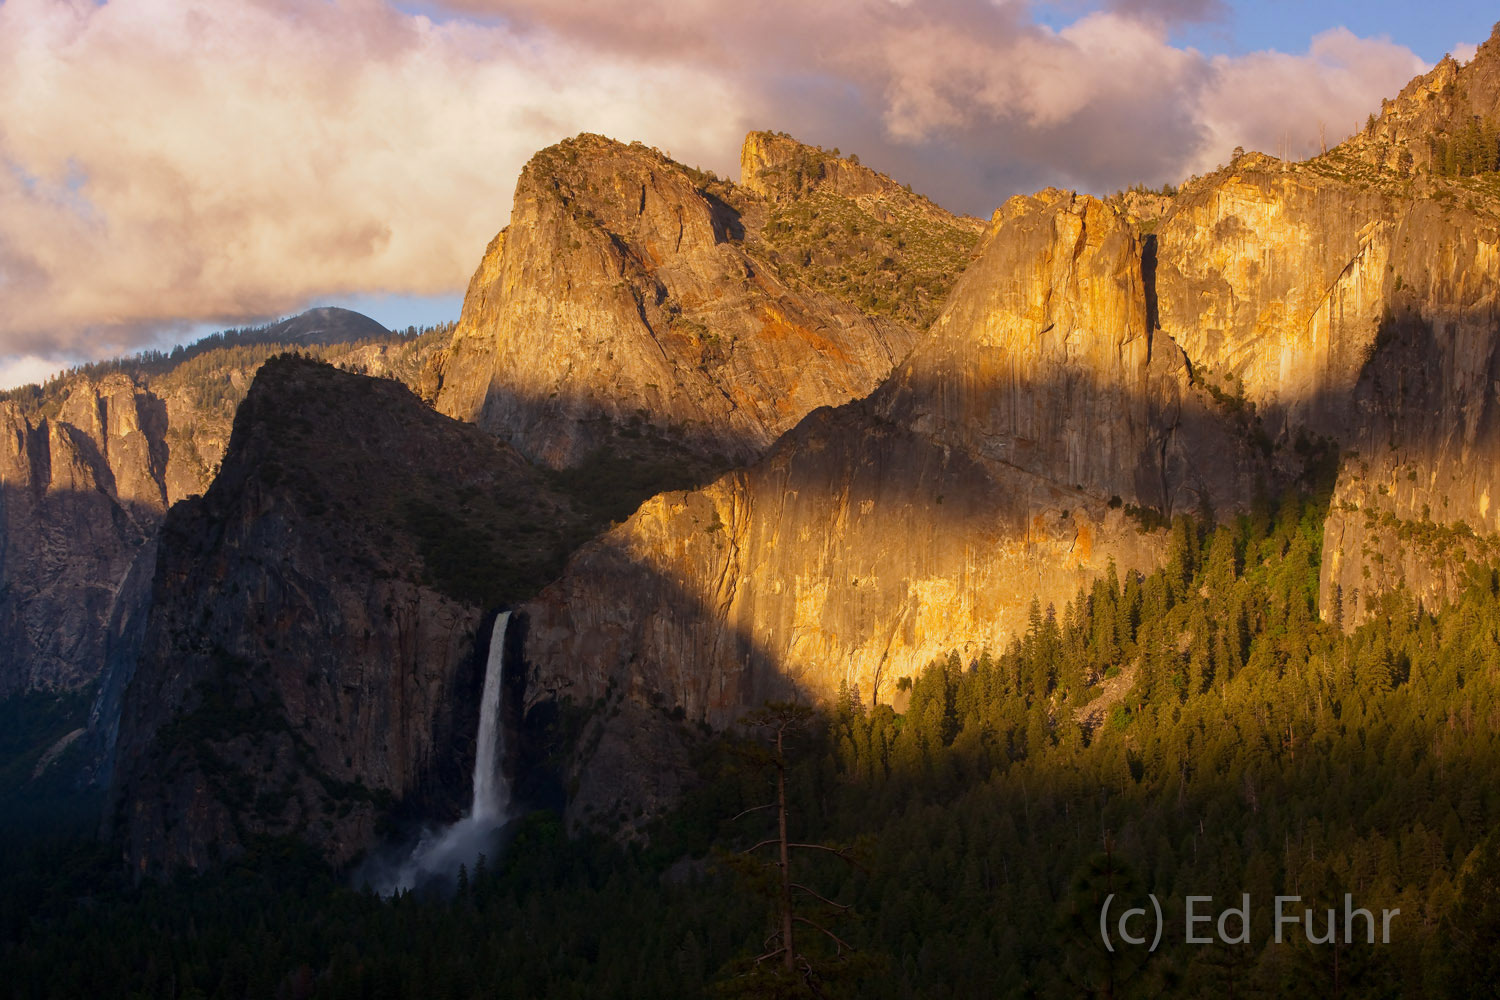 The tunnel view into the Yosemite Valley at sunset offers one of the spectacular vistas in our national park system.